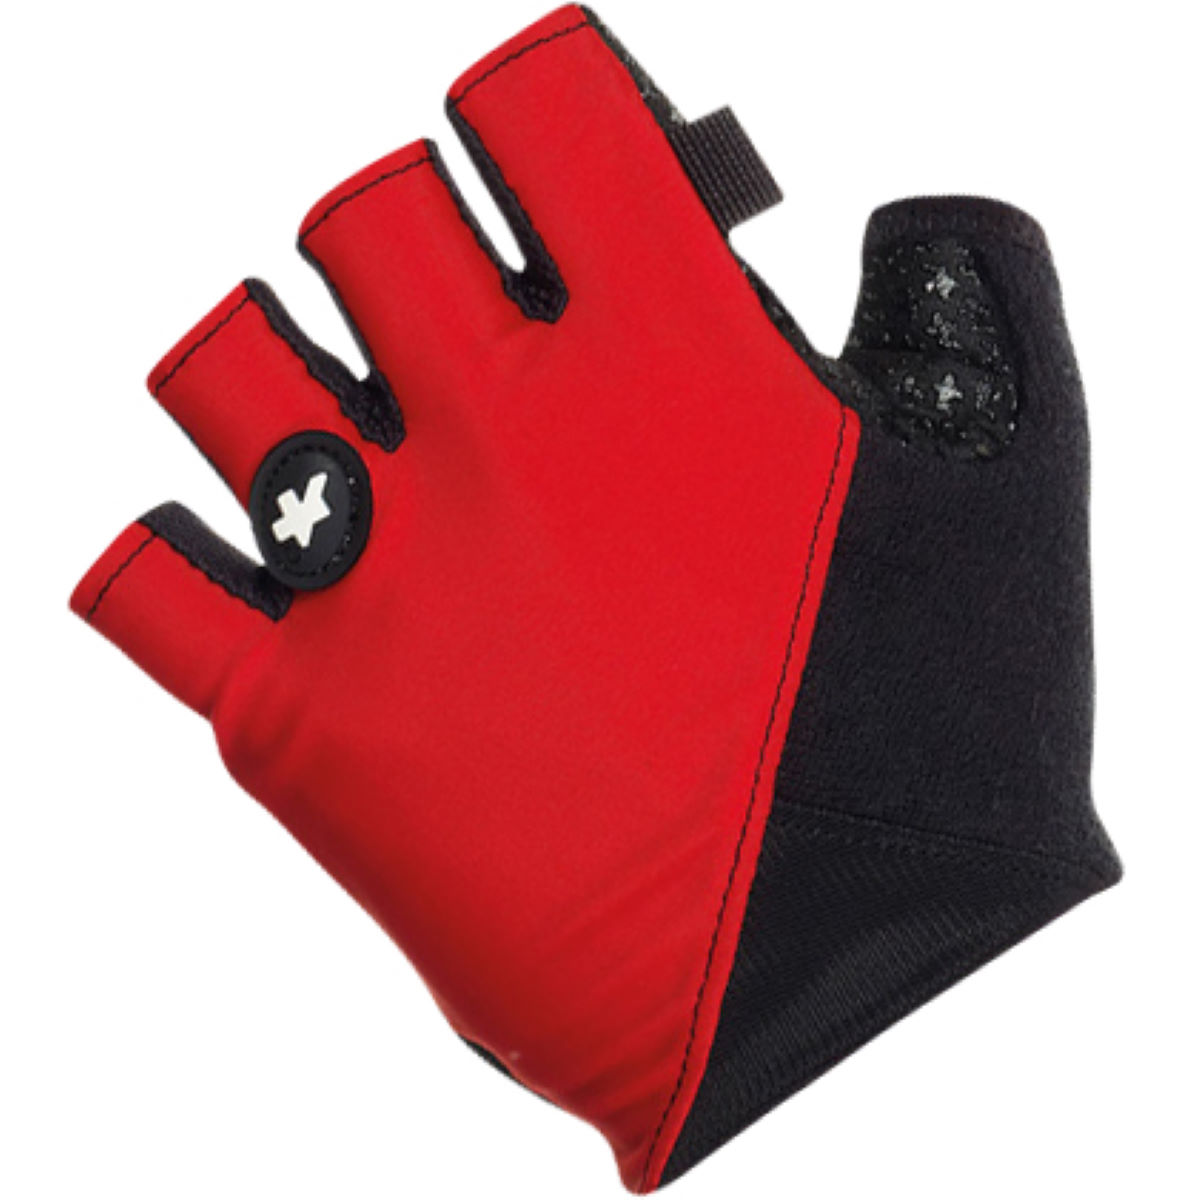 Gants courts Assos summerGloves_s7 - XS Red Swiss Gants courts